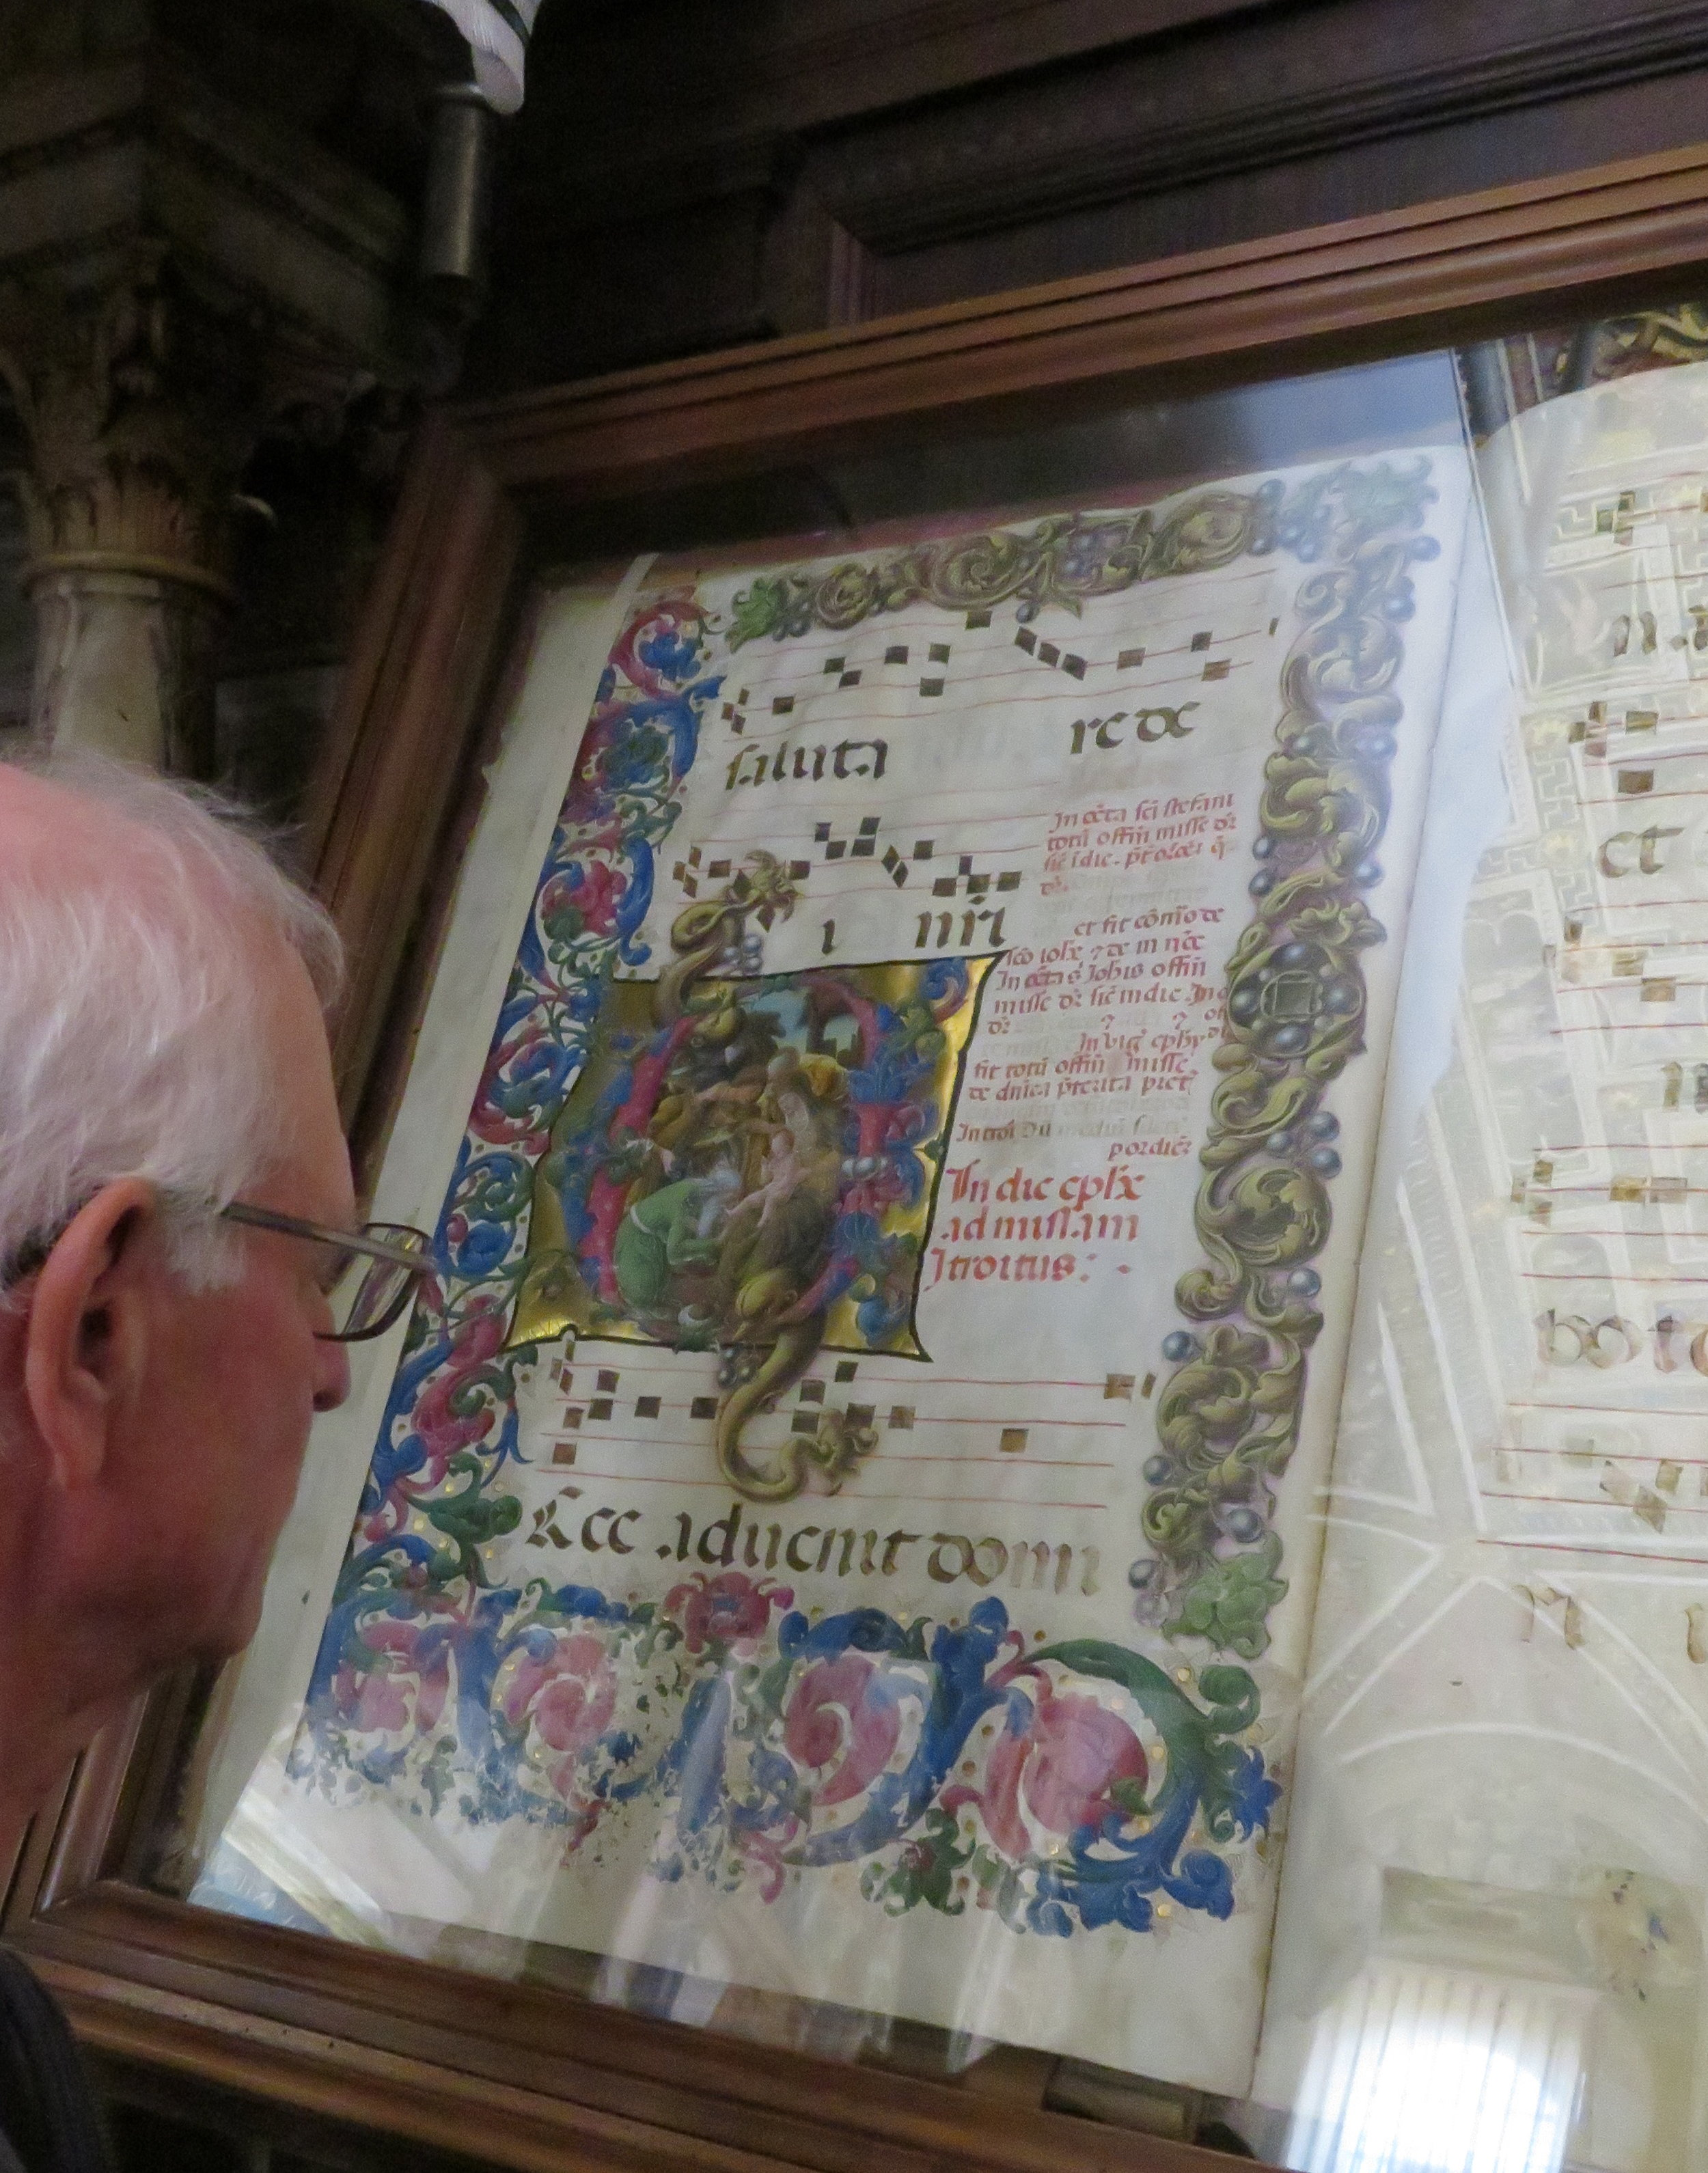 A collection of illuminated manuscripts were fantastic, but…